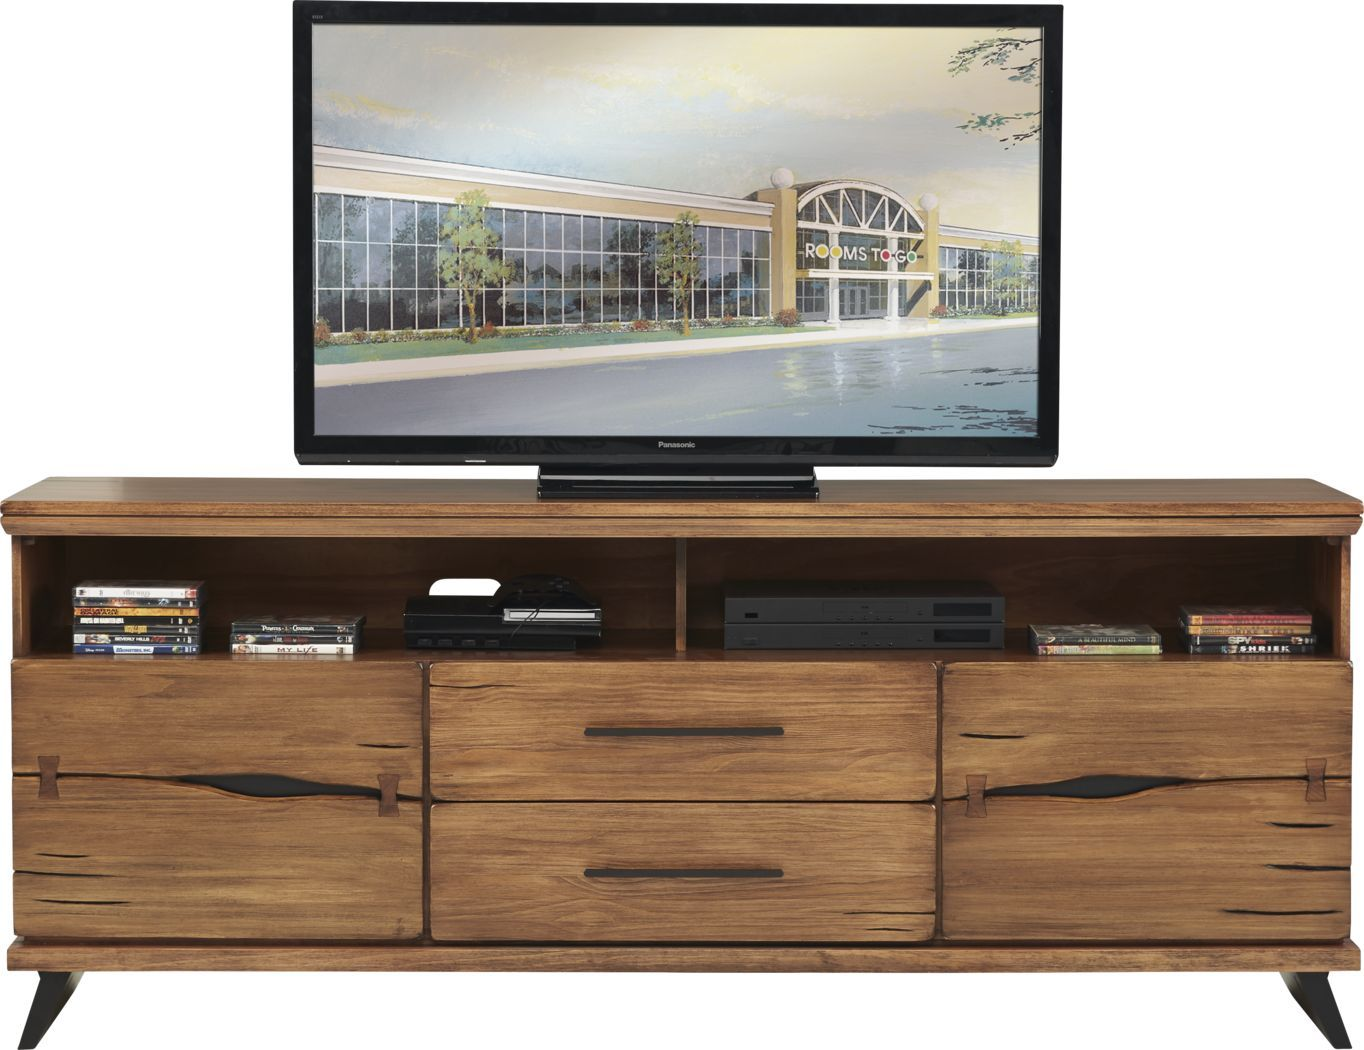 Dana Point Brown 80 In Console In 2021 Console Furniture Tv Stand Console Flat Screen Tv Stand 80 inch tv stand